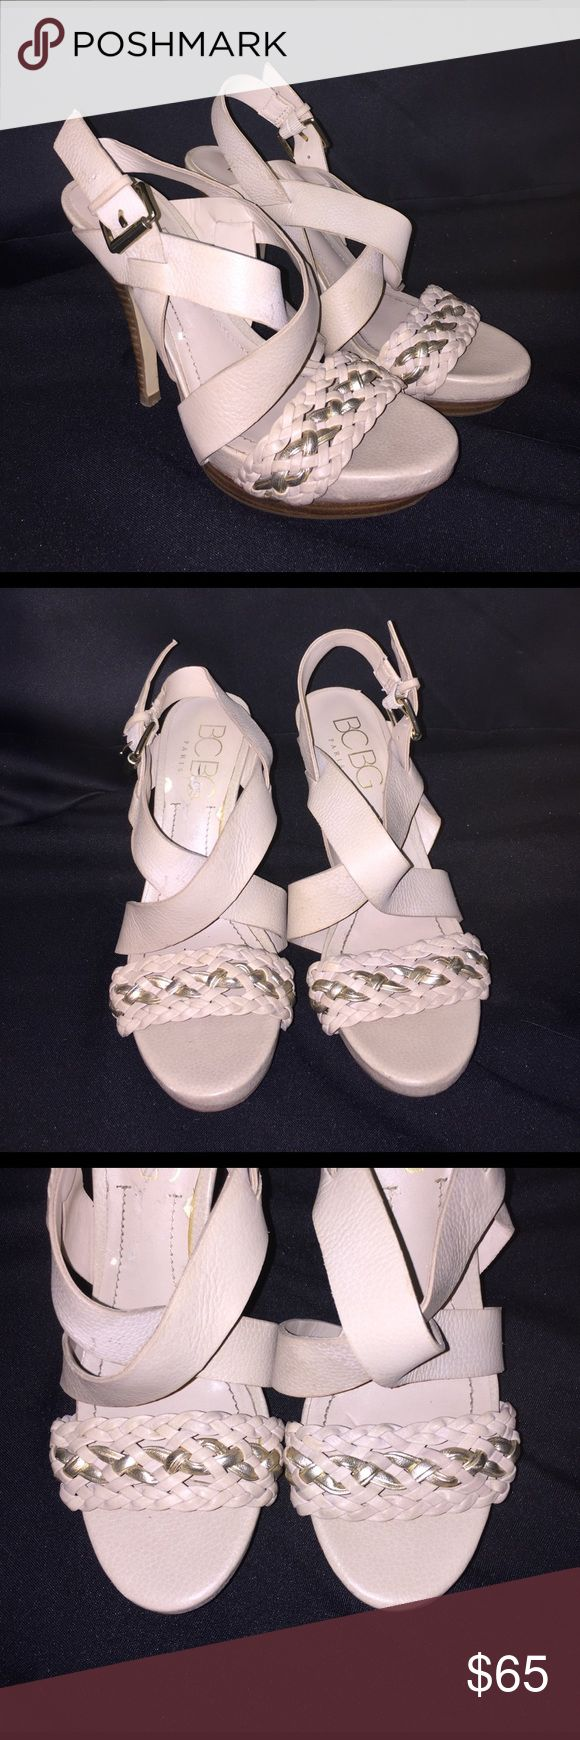 BCBG Paris Cream High Heels Stilettos 6B 36 NEW New, never before worn! These is some slight discolorations on the sole of the right shoe due to peeling off a sticker. Other than that, perfect condition! Feel free to ask any questions :) BCBG Shoes Heels